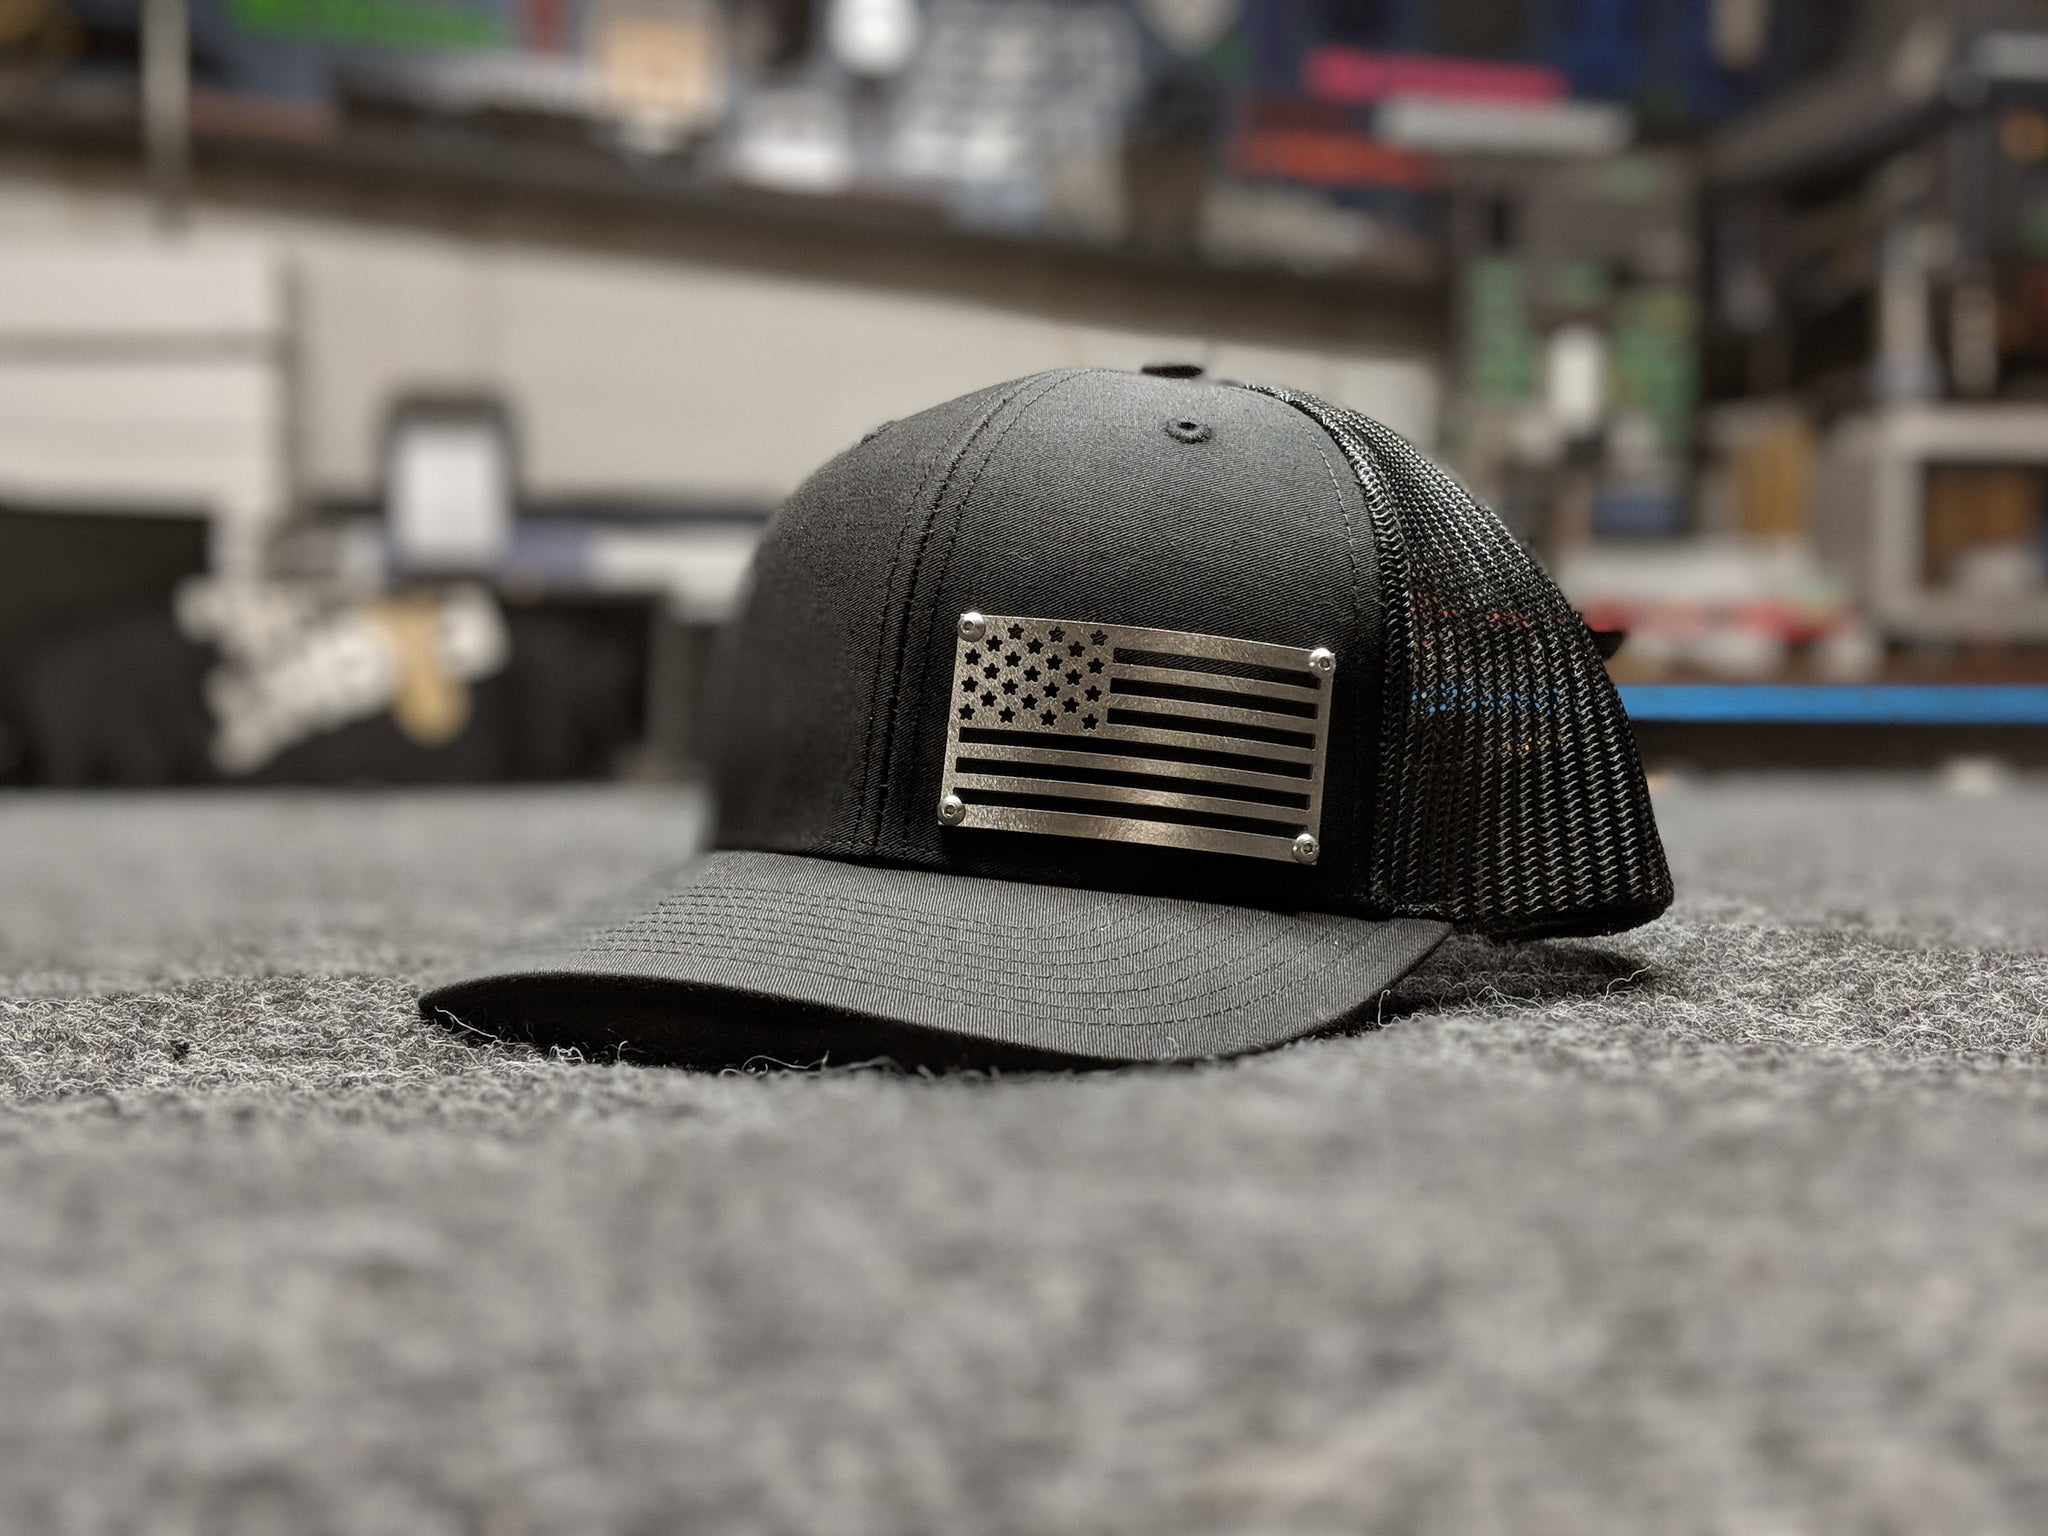 American Flag Stainless Steel HeadGear Hat